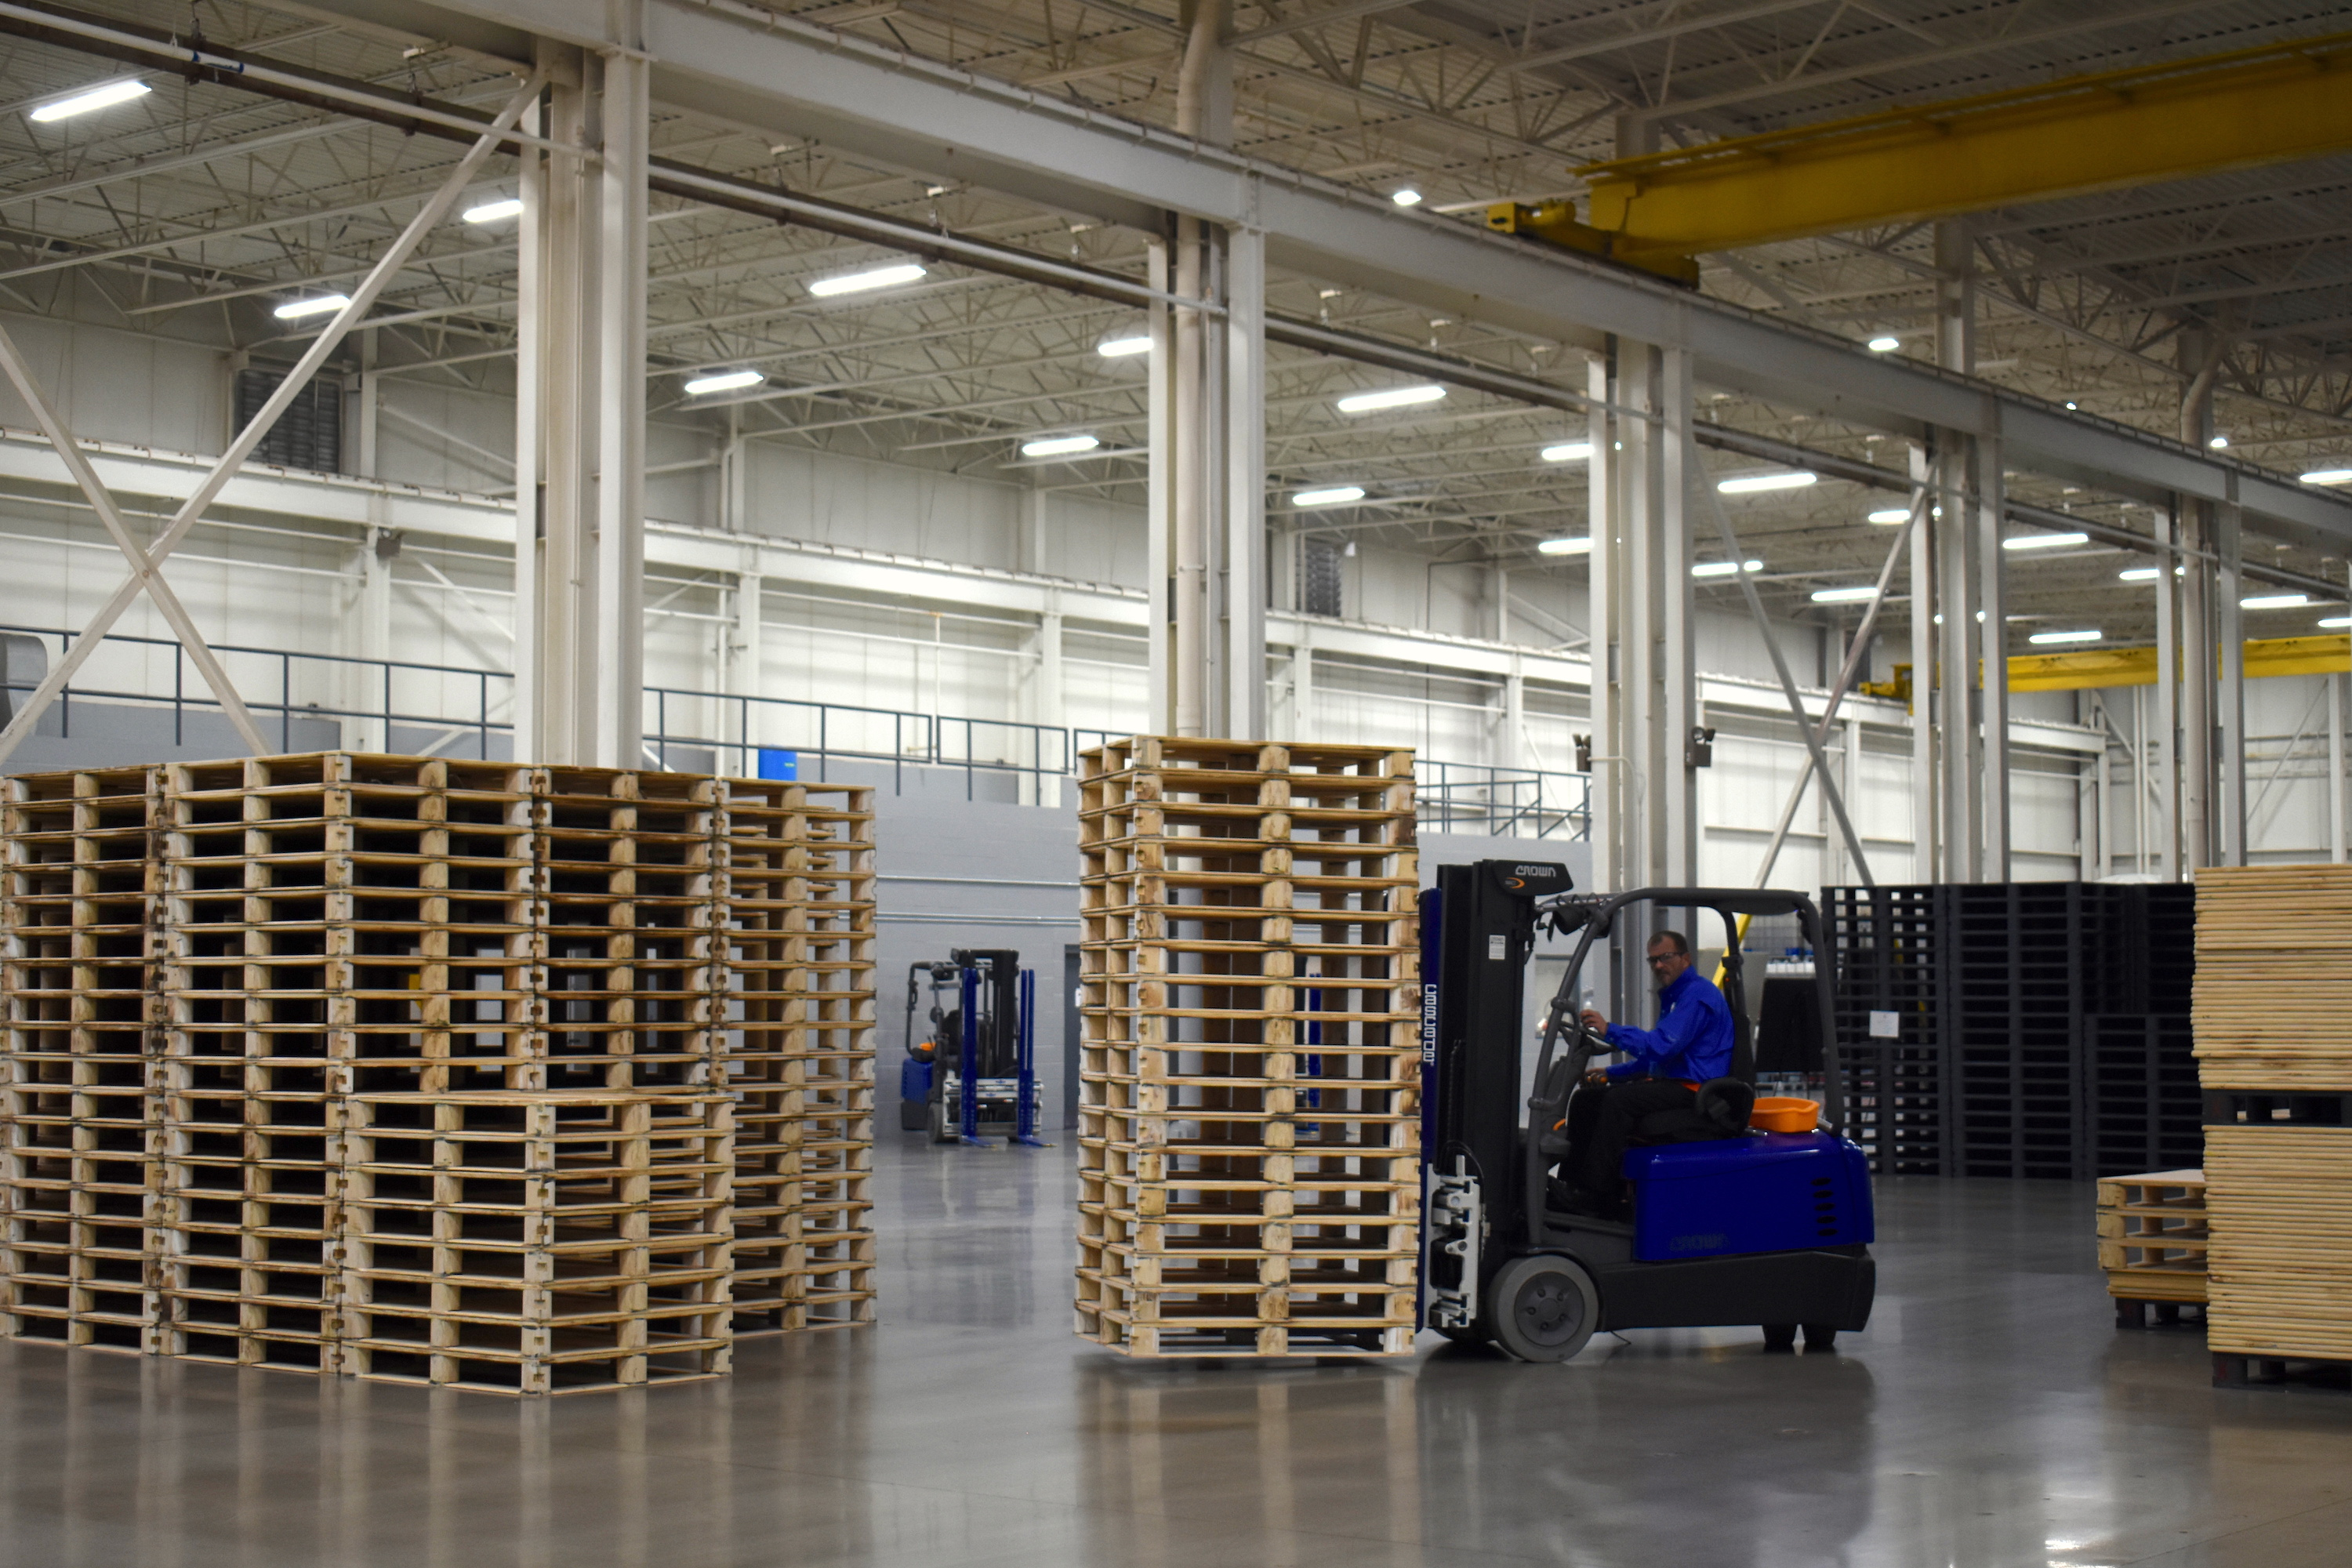 Warehouse For Sale Detroit Oakland County Company Aims To Build A Better Pallet With Help